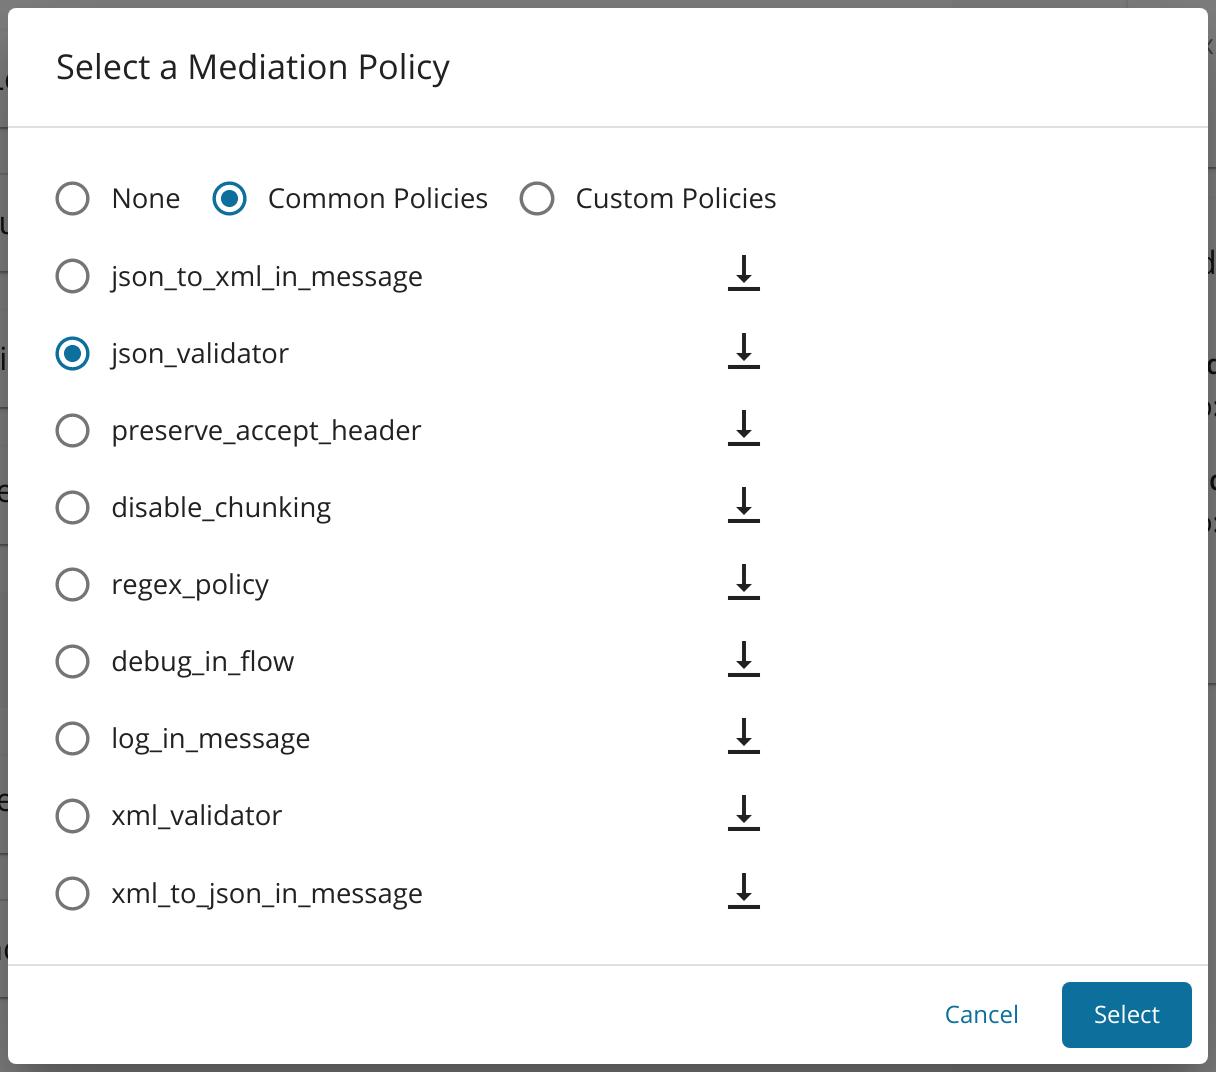 Select JSON validator from the drop-down menu